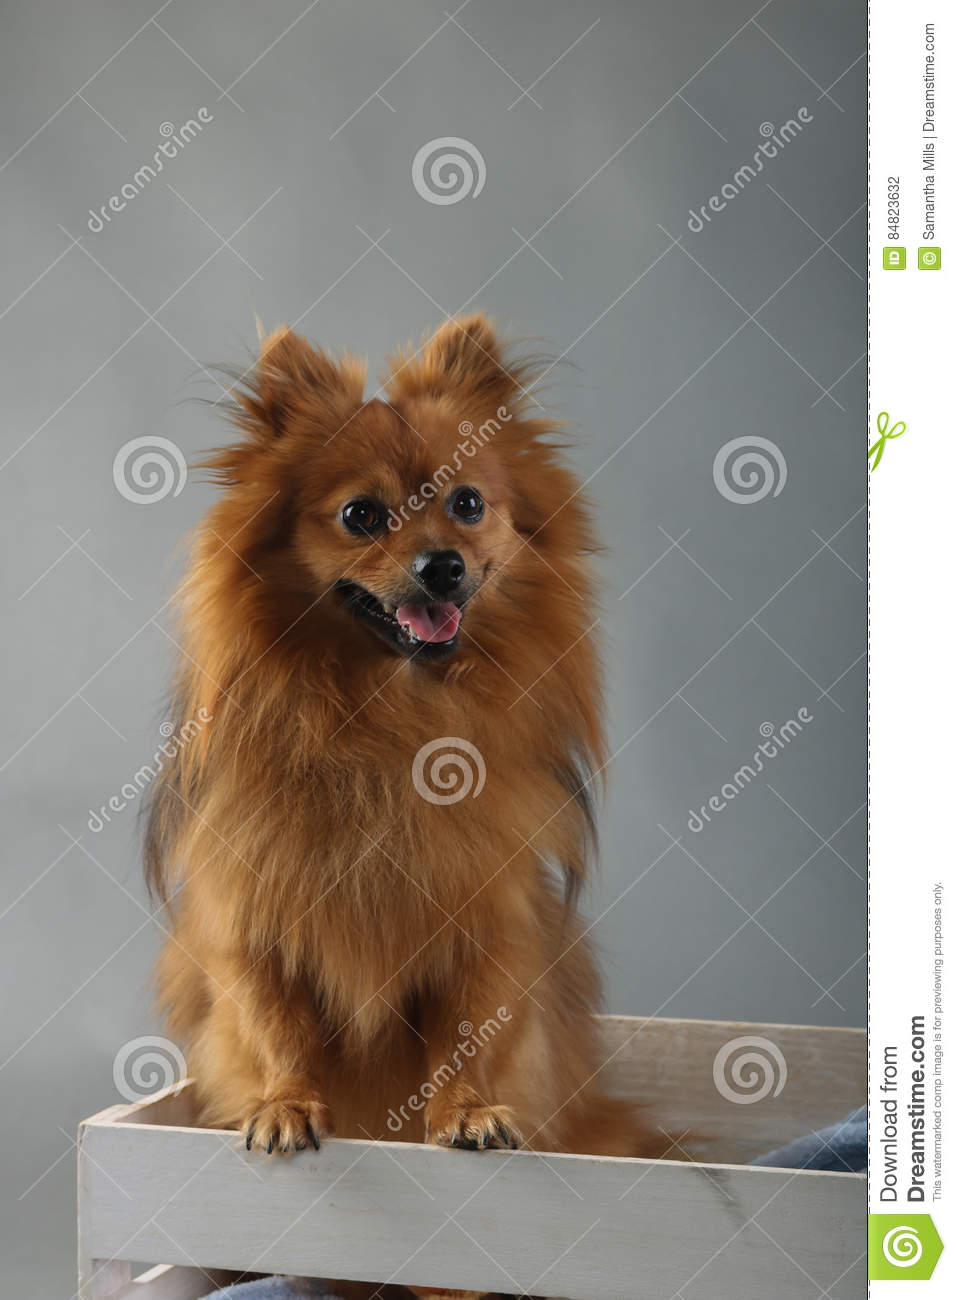 Cute Fluffy Brown Small Dog Stock Photo Image Of Brown Cute 84823632